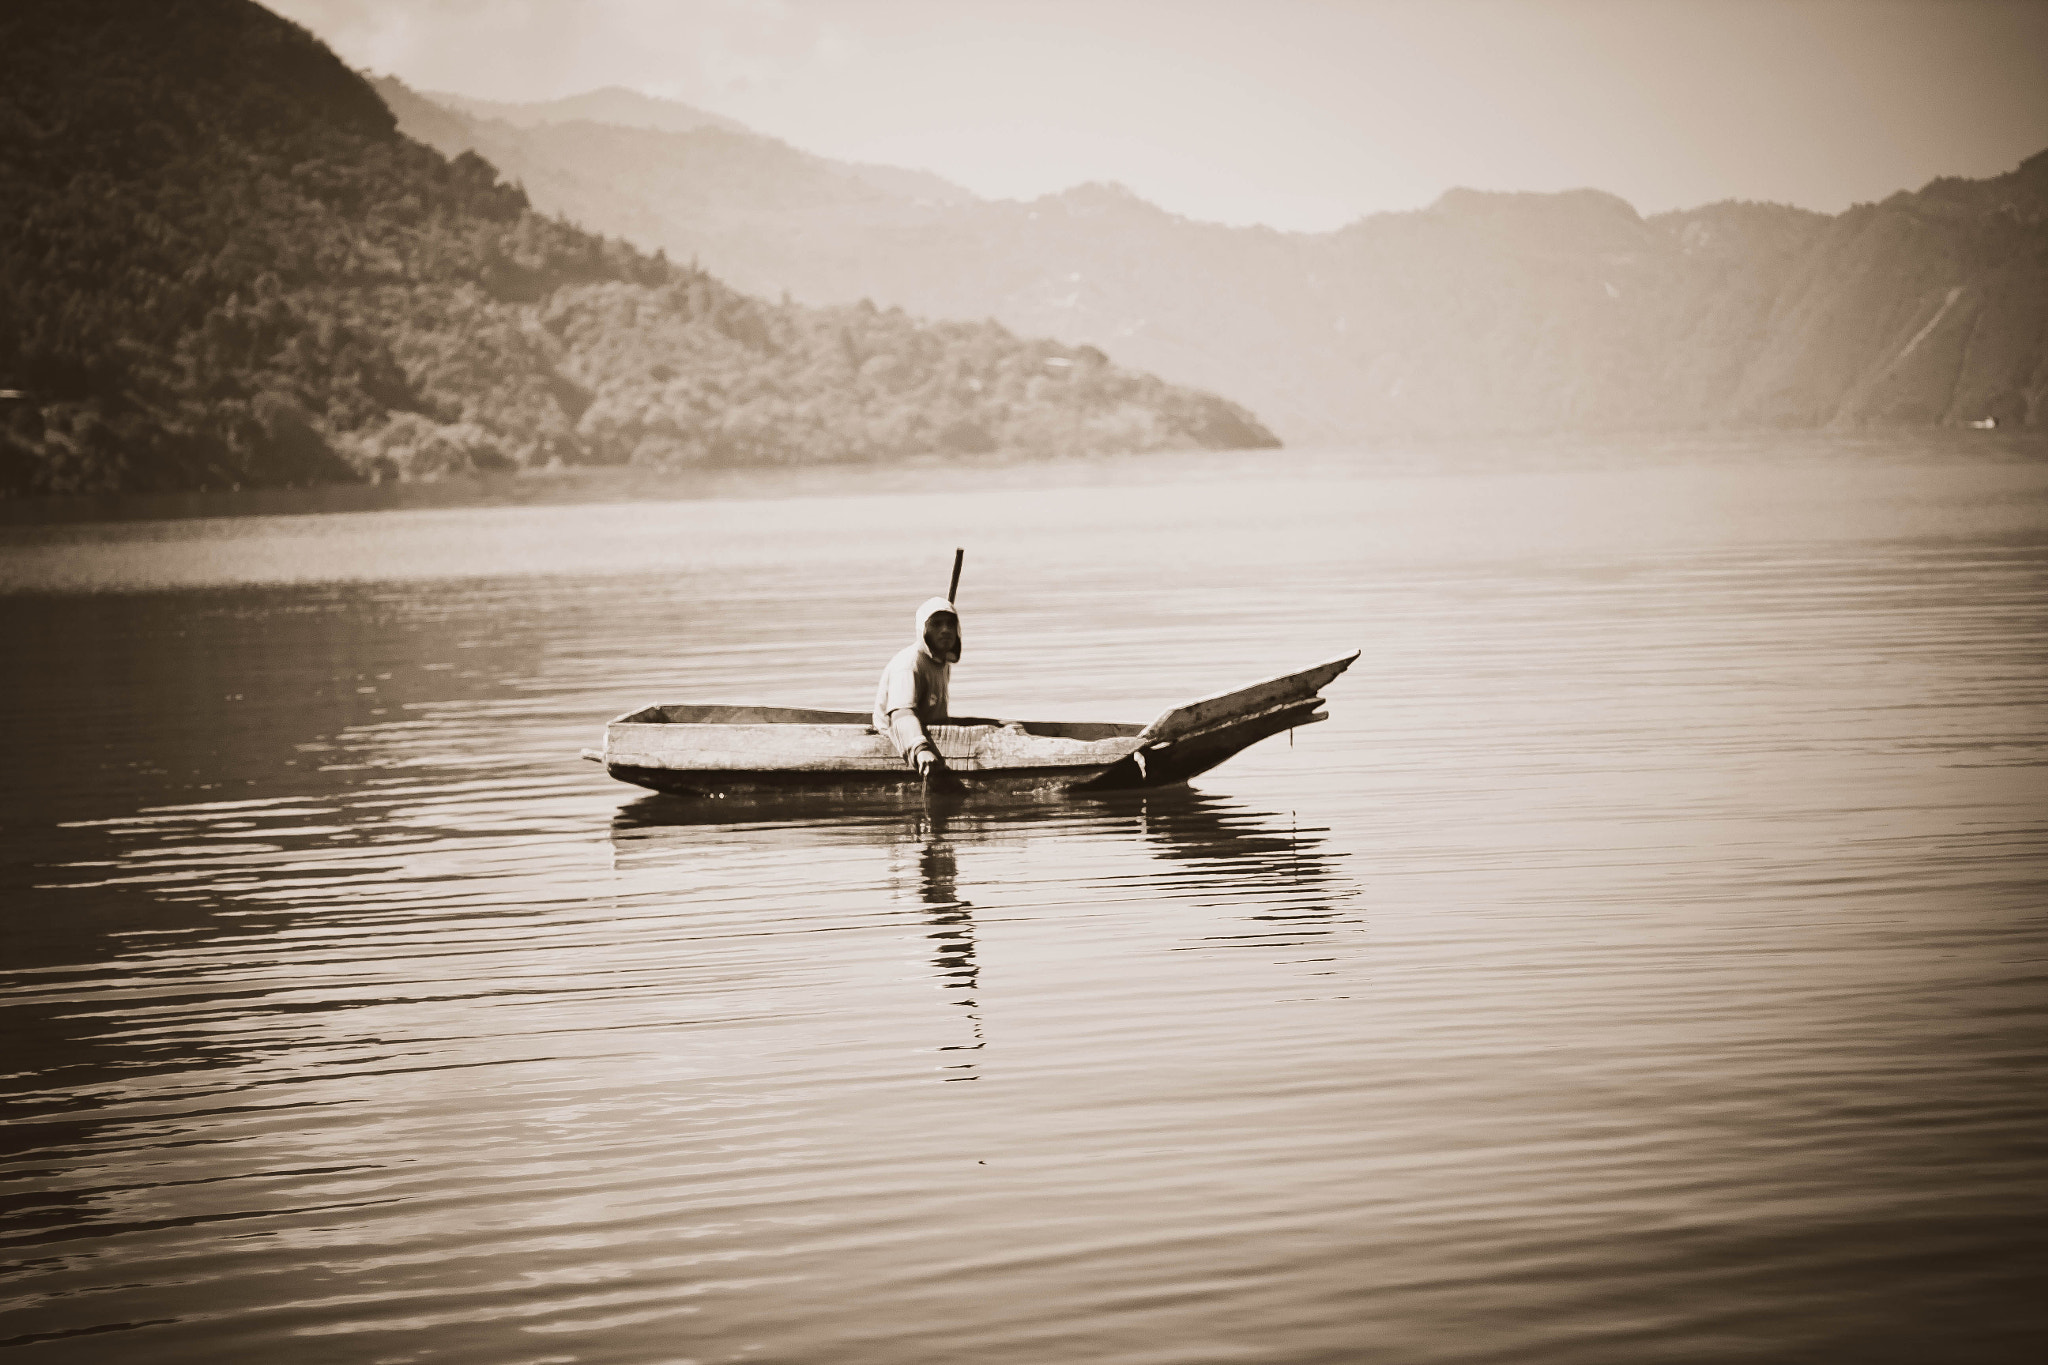 Photograph Lake Atitlan Fisherman. by Jeremy Cupp on 500px